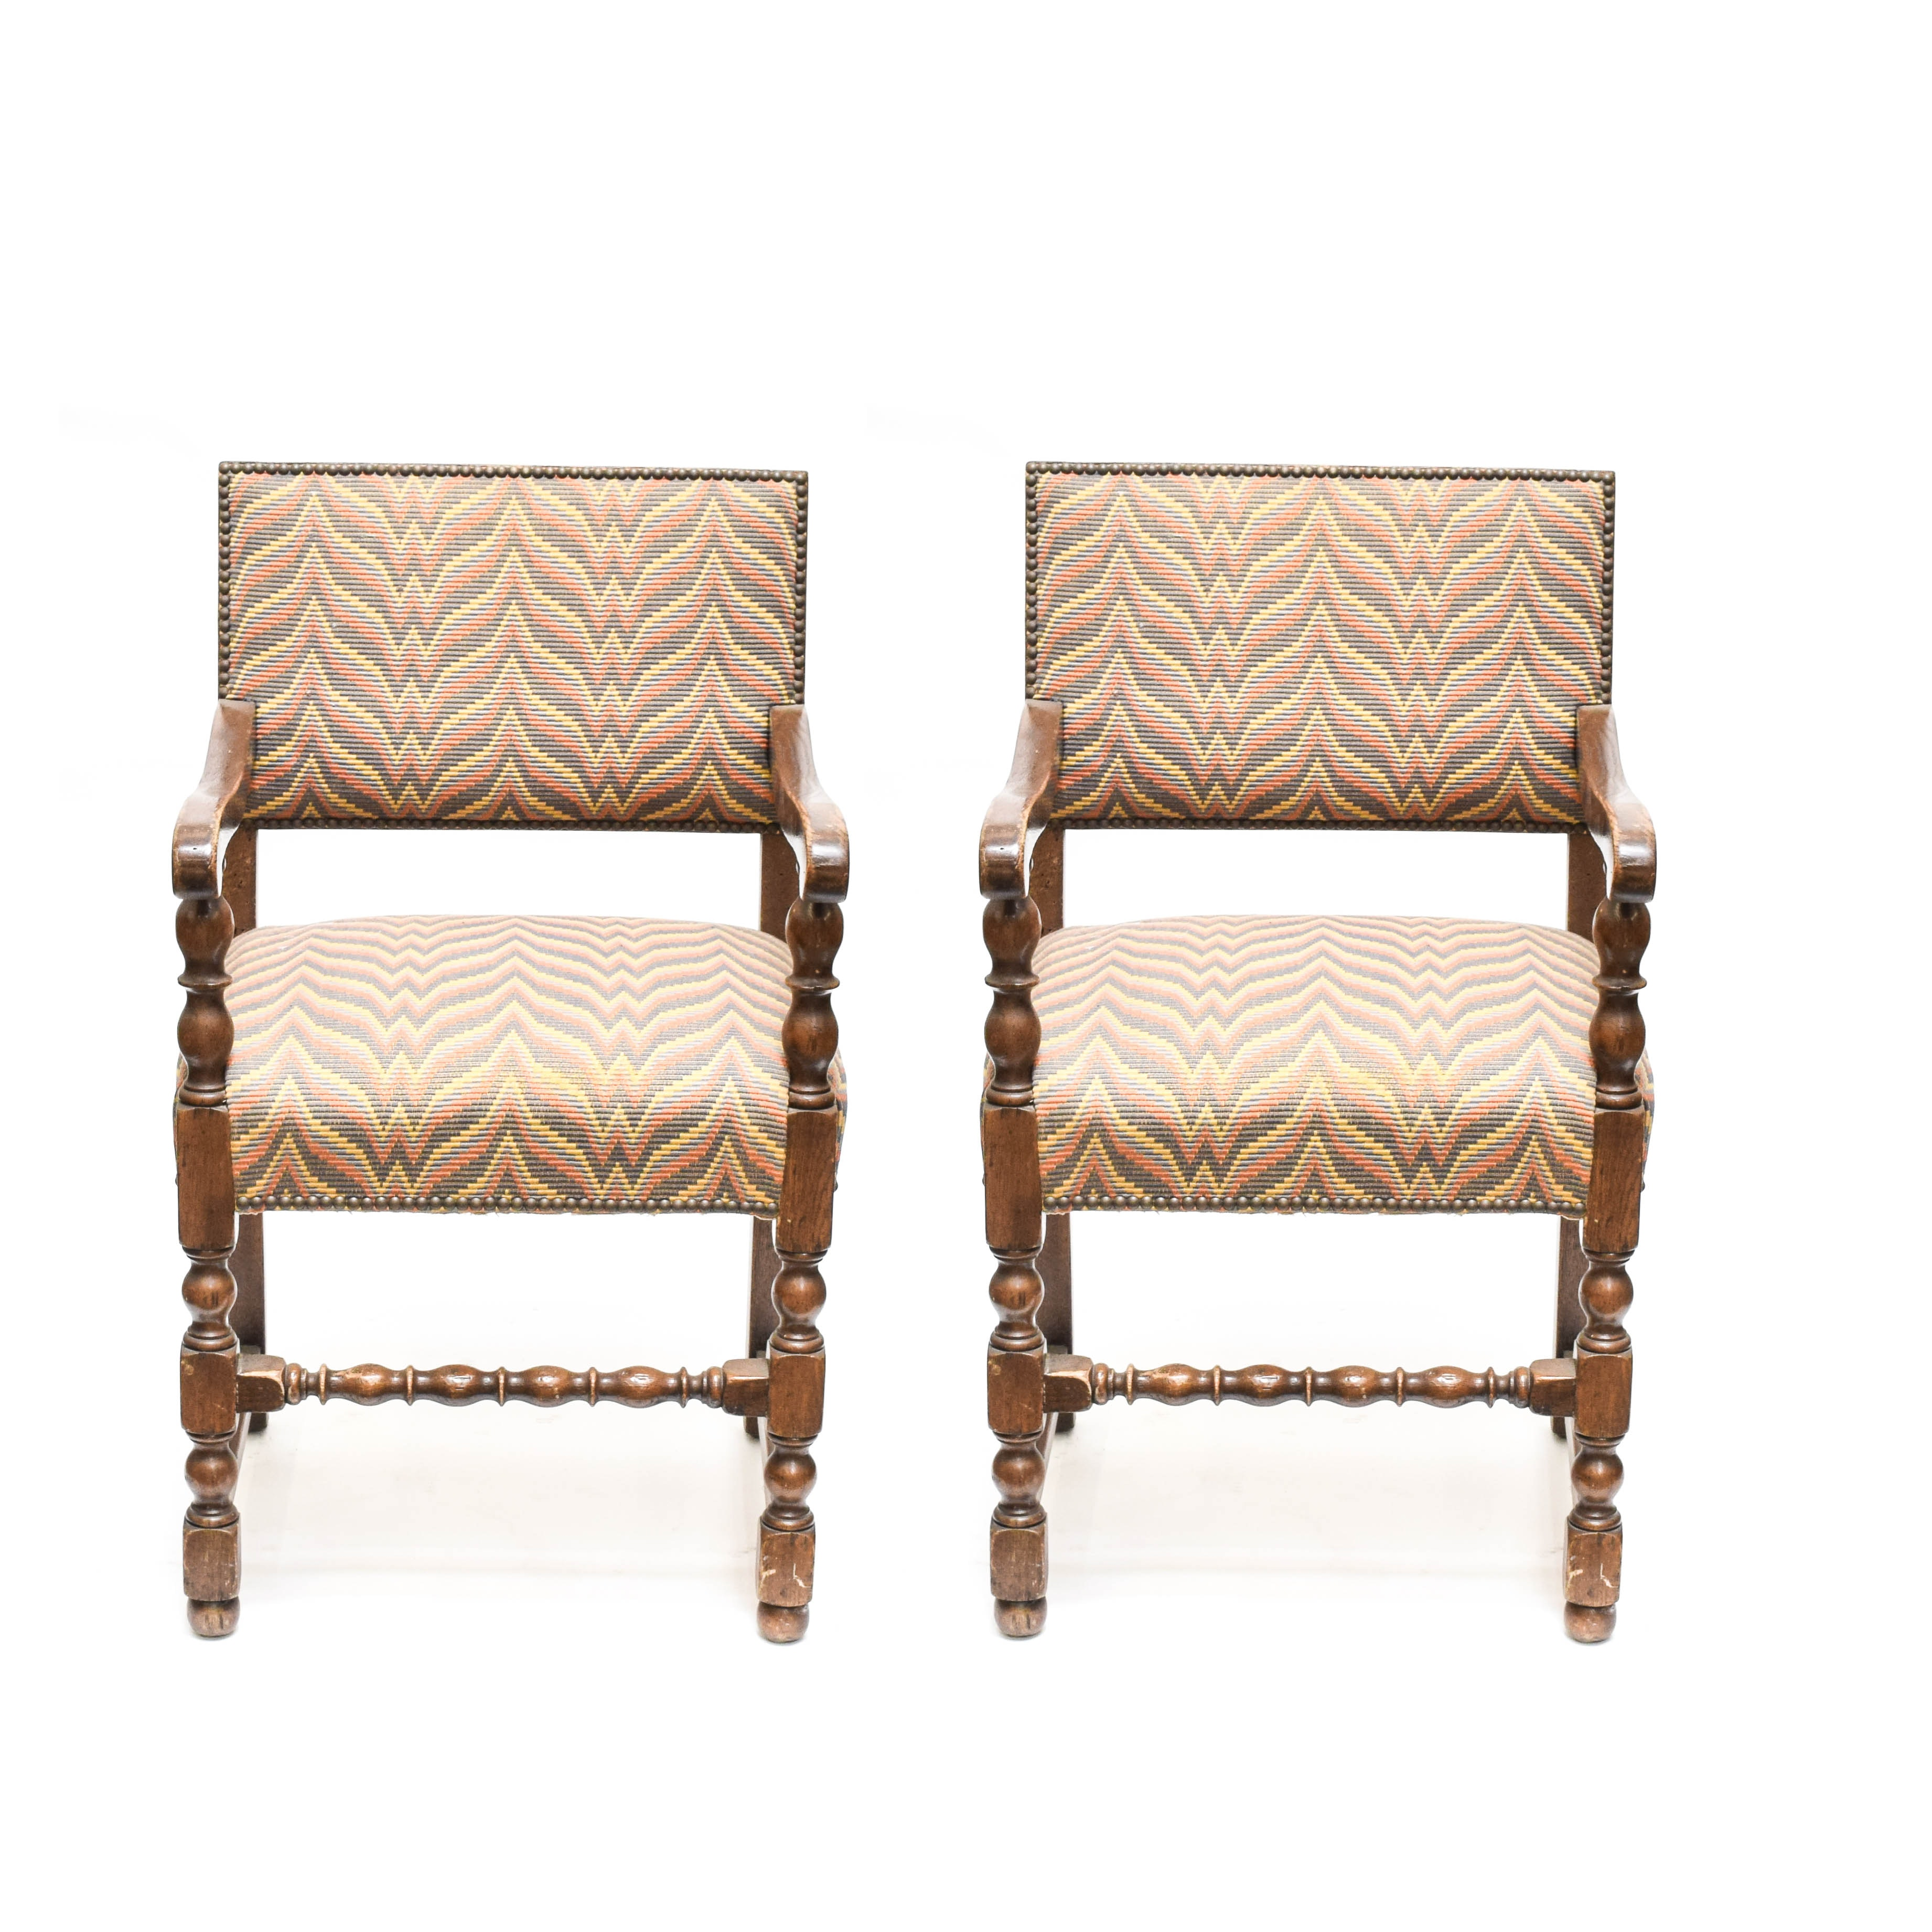 Vintage William and Mary Style Chairs